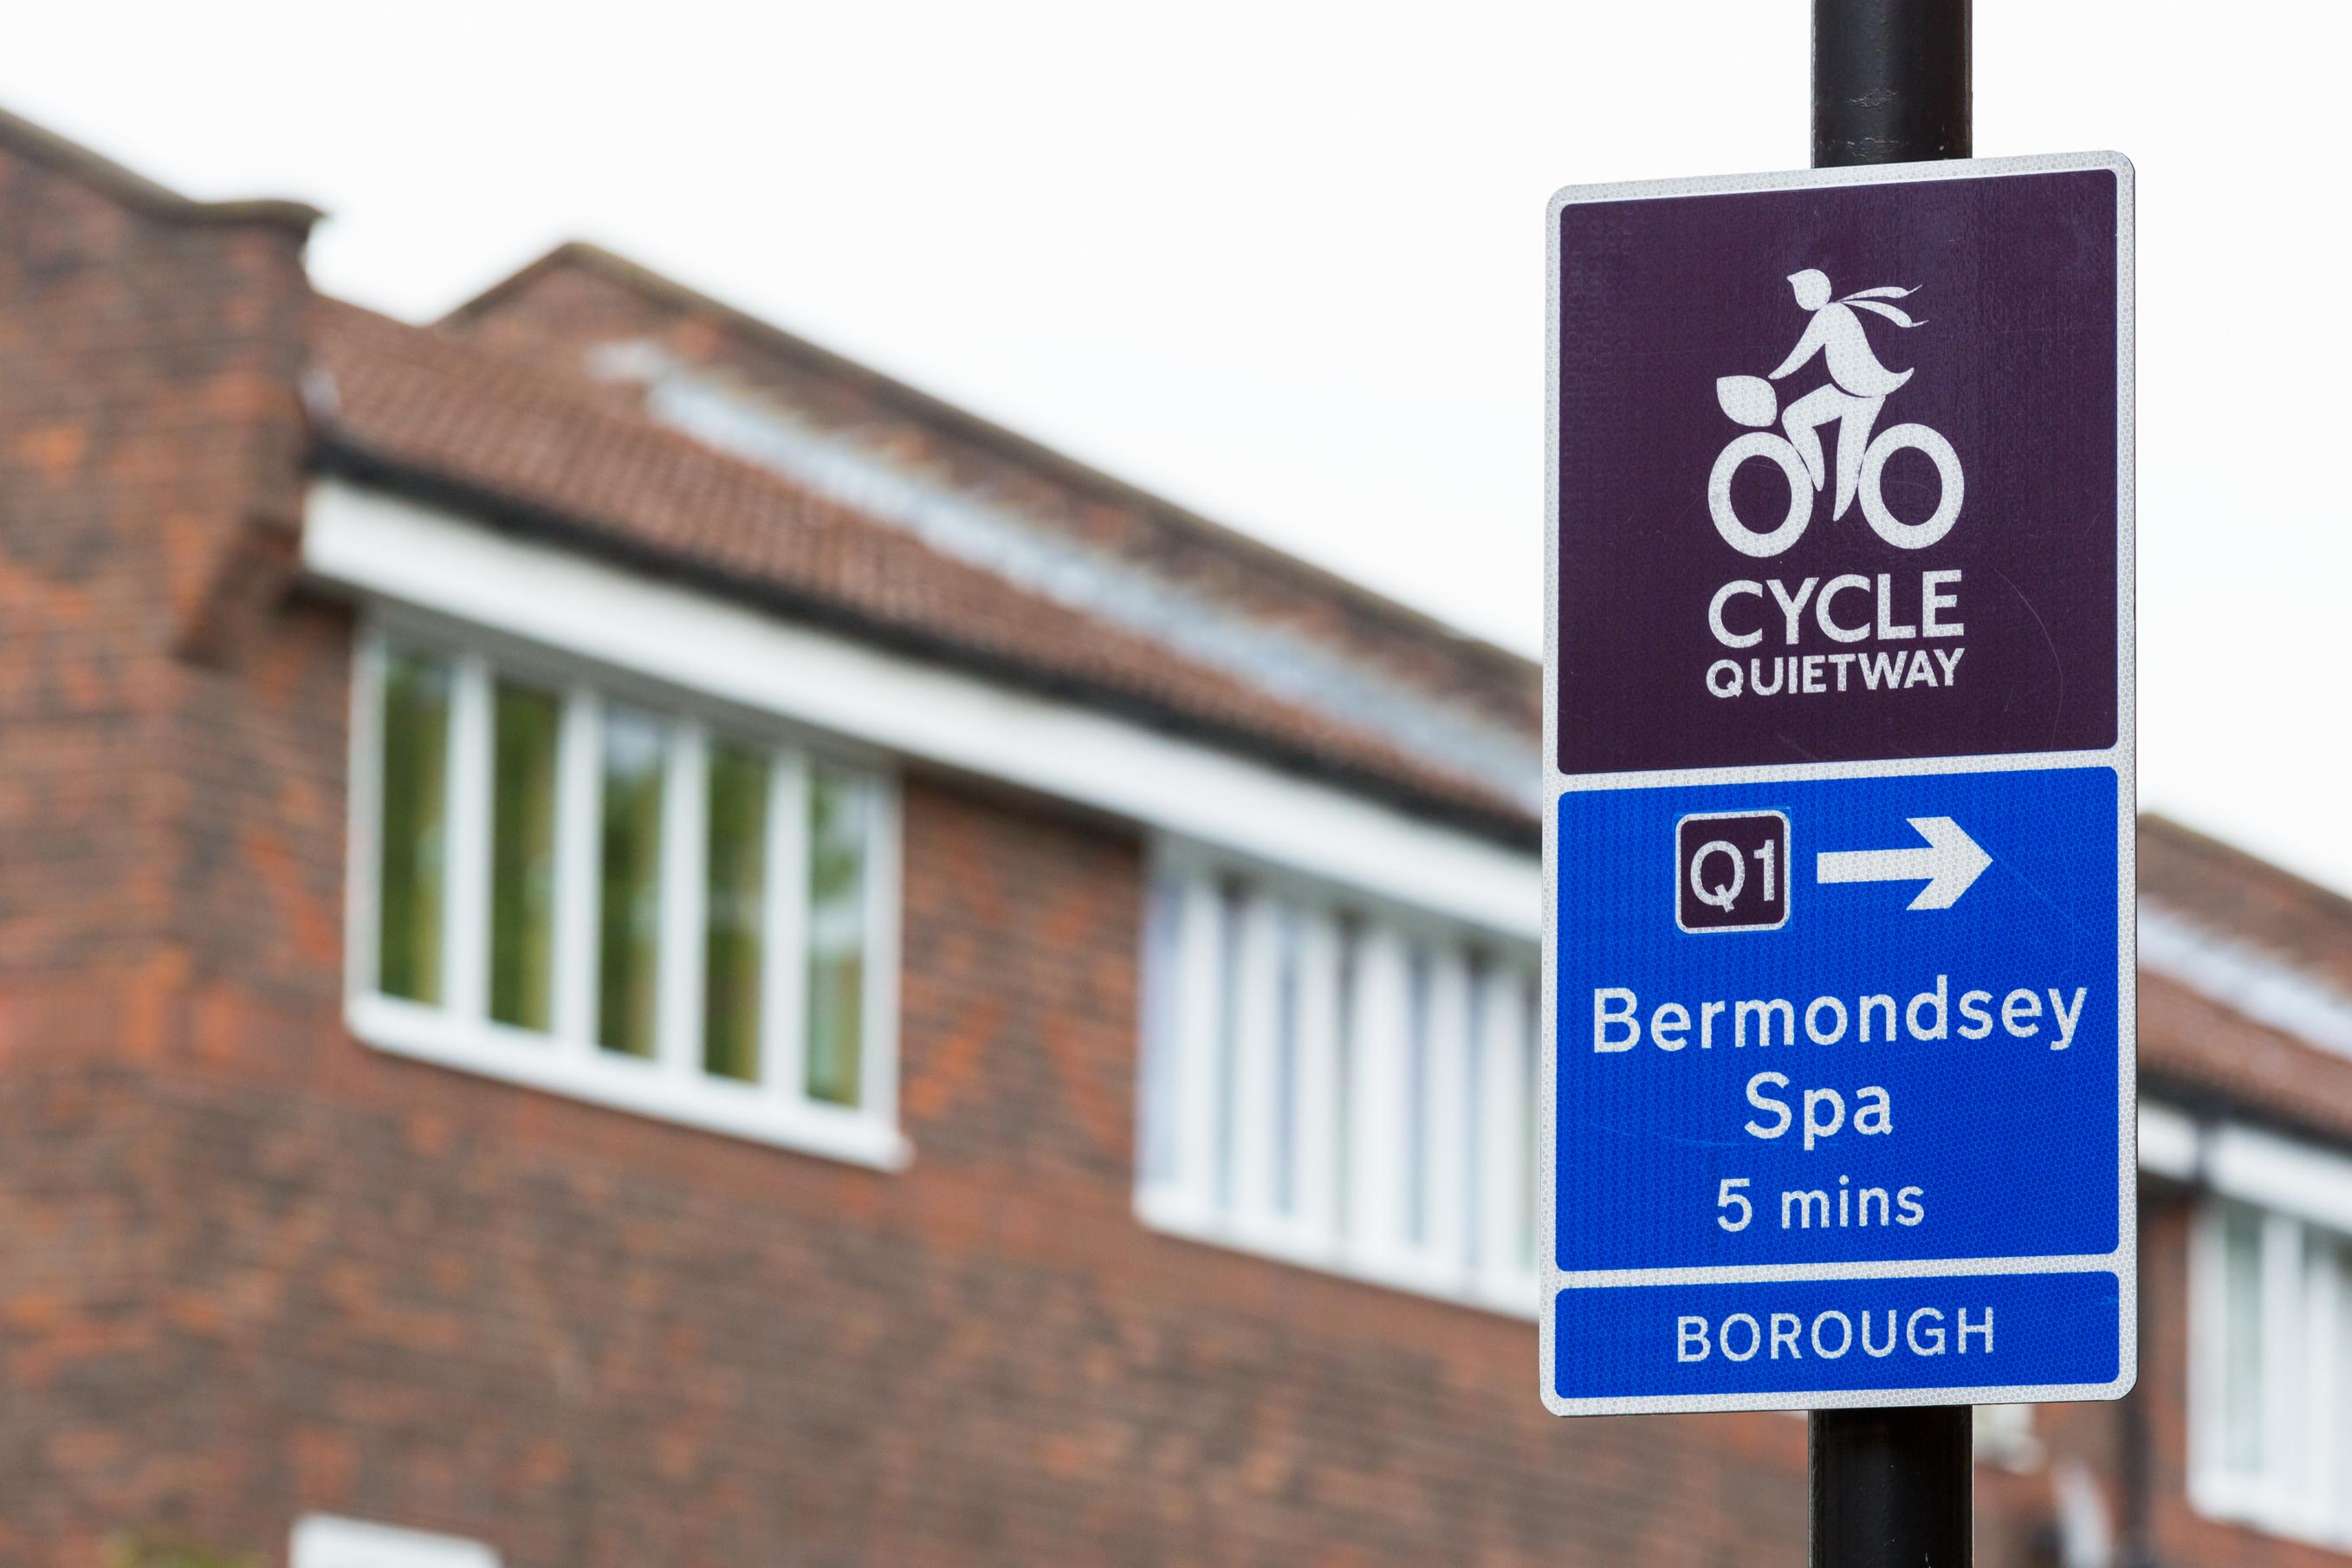 Signage on the Quietways 1 cycle route